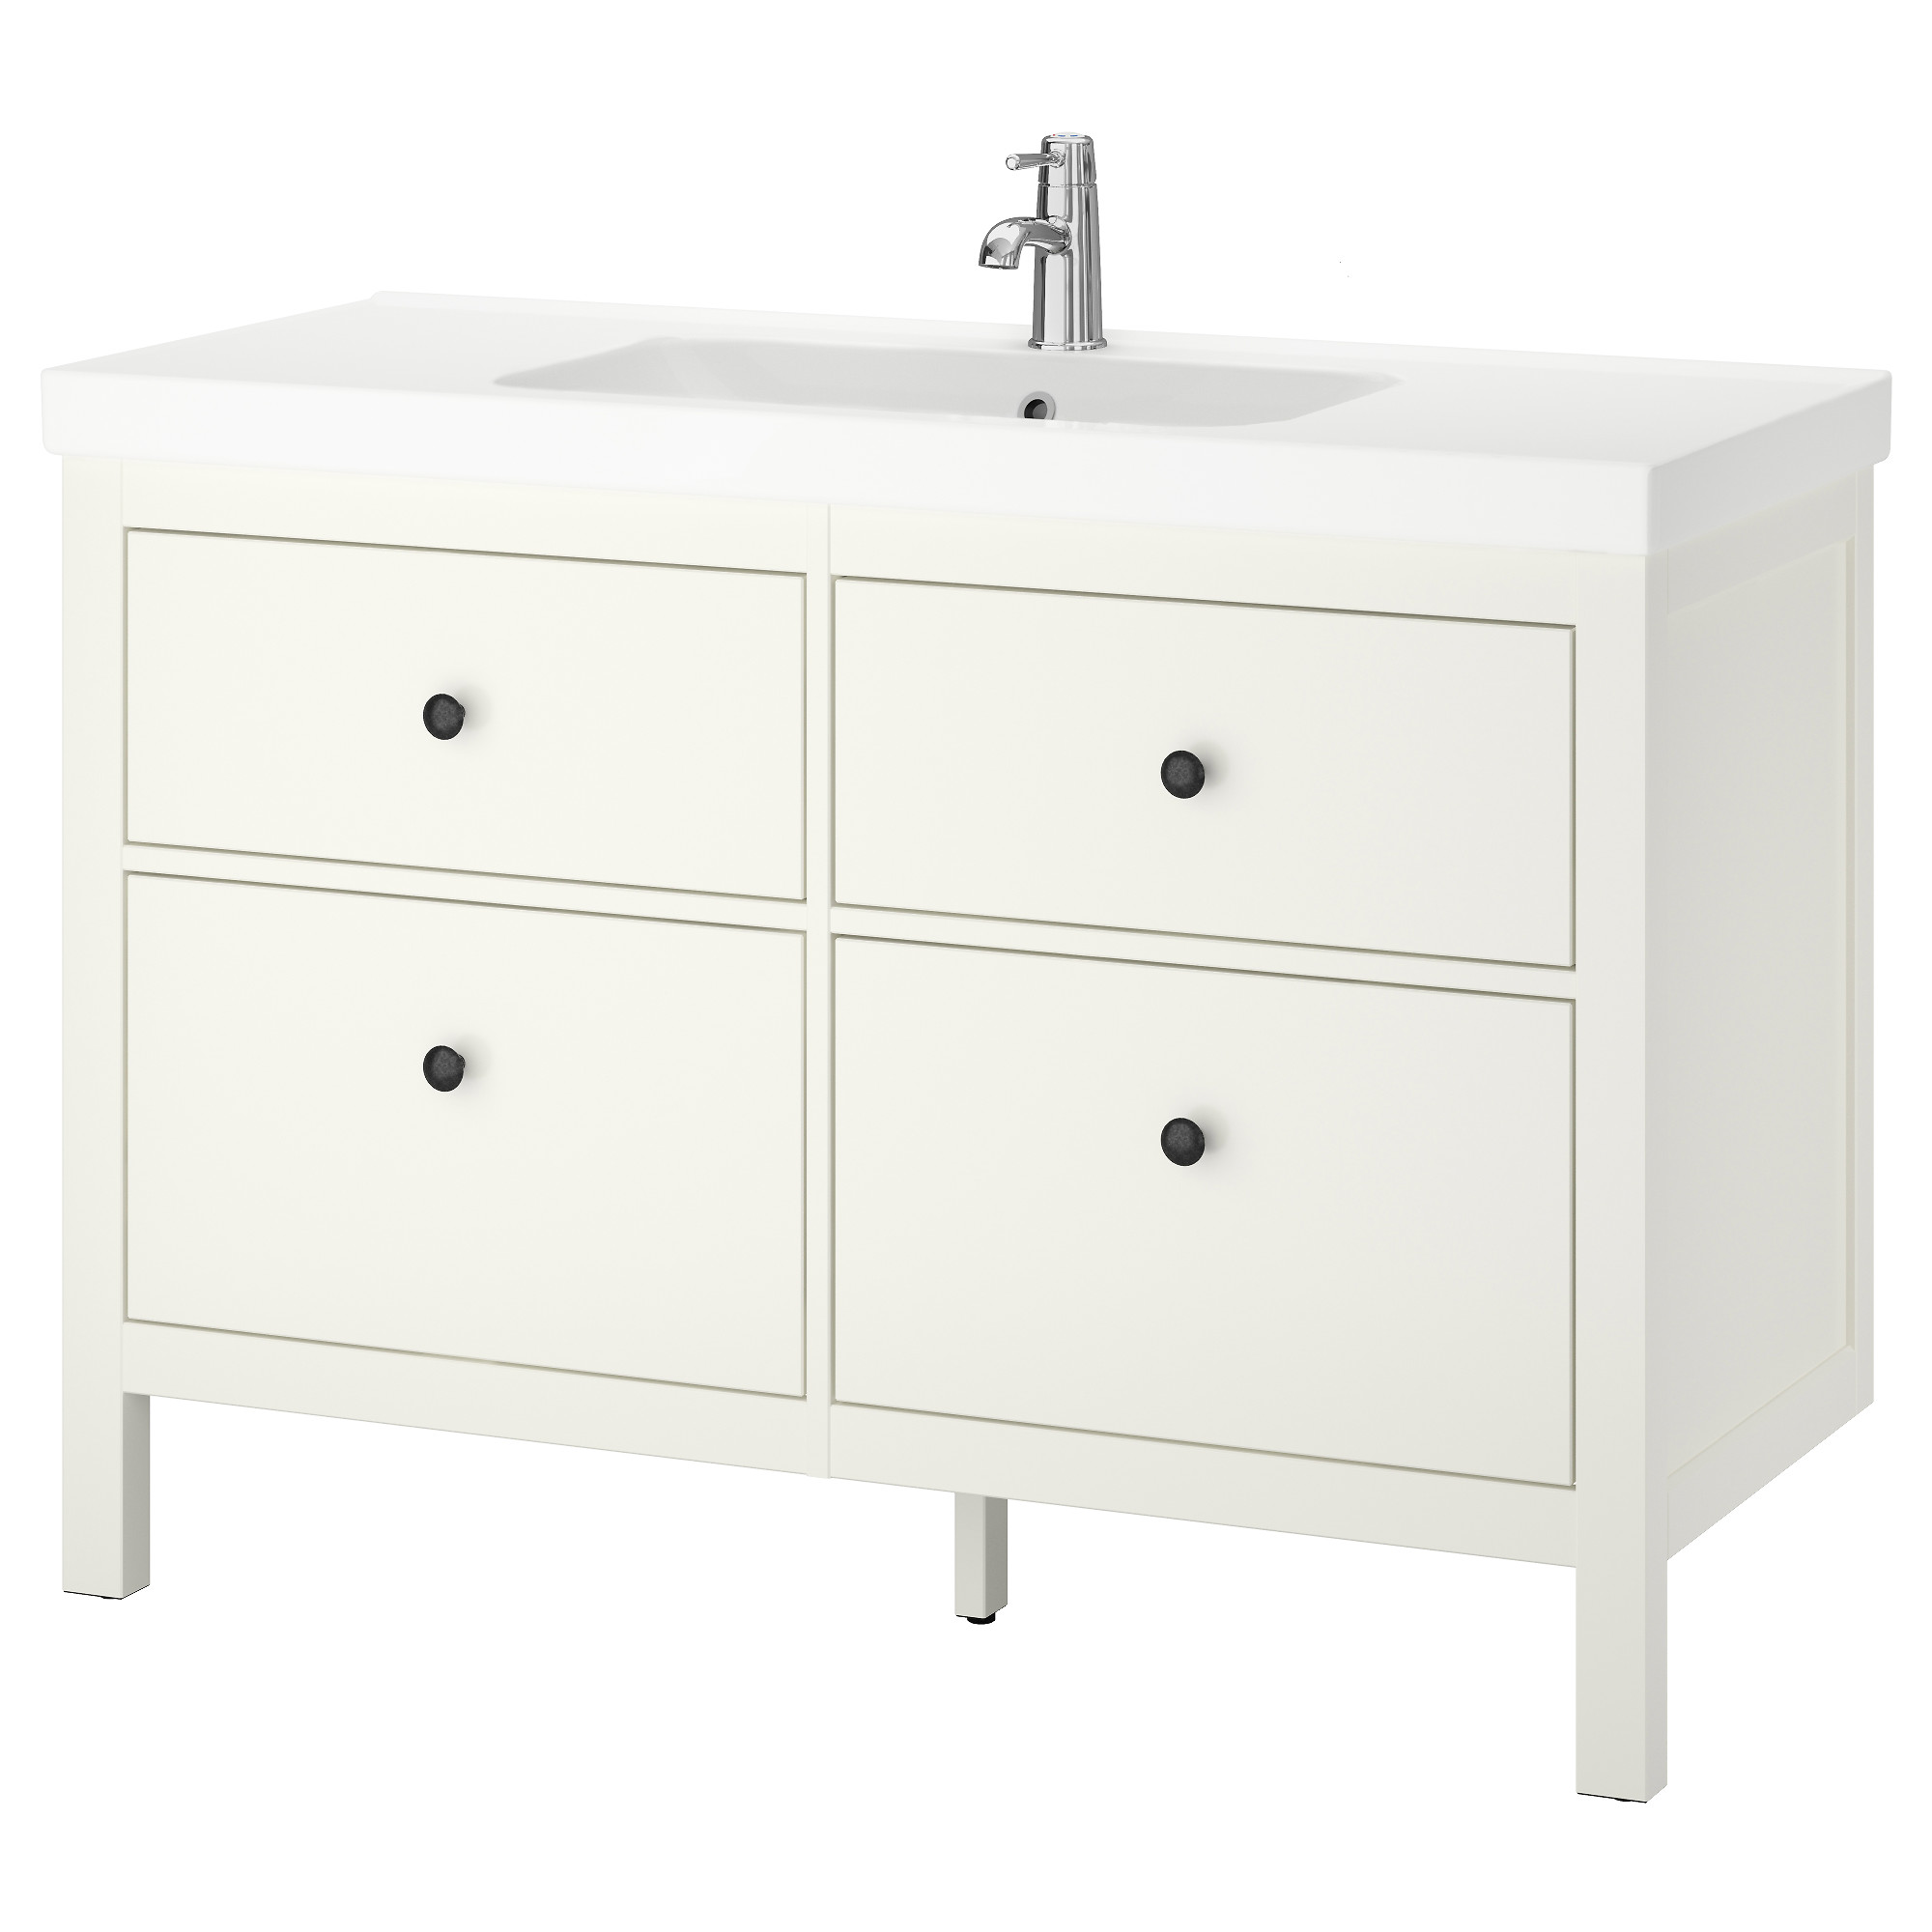 Hemnes Odensvik Sink Cabinet With 4 Drawers White Width 47 1 4